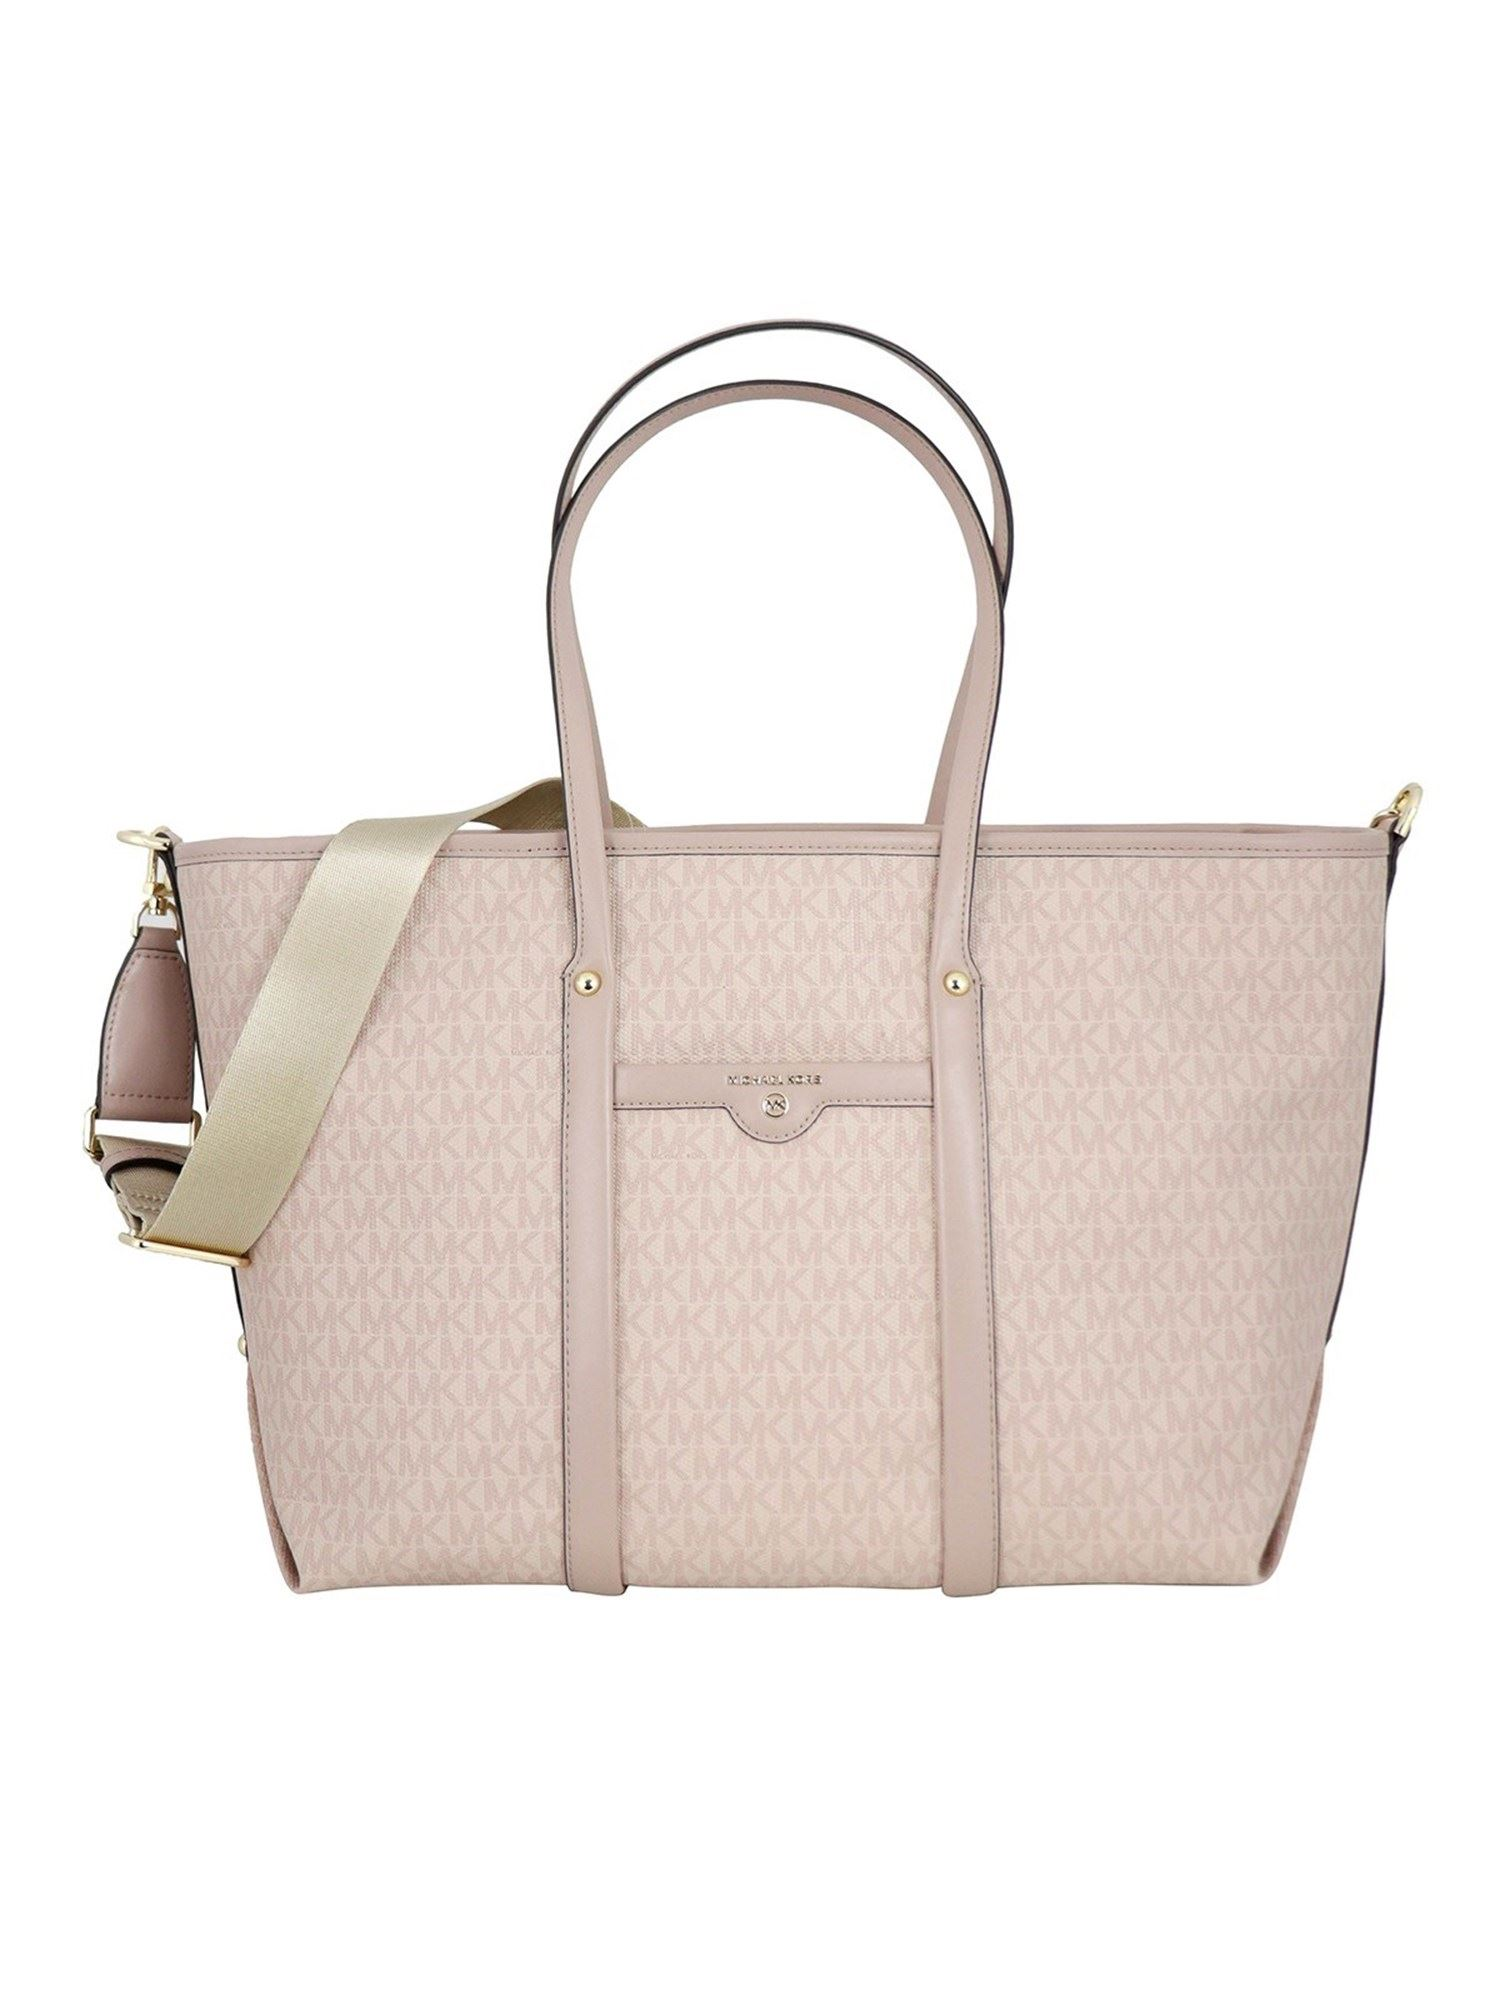 Michael Kors BECK LARGE TOTE BAG IN PINK